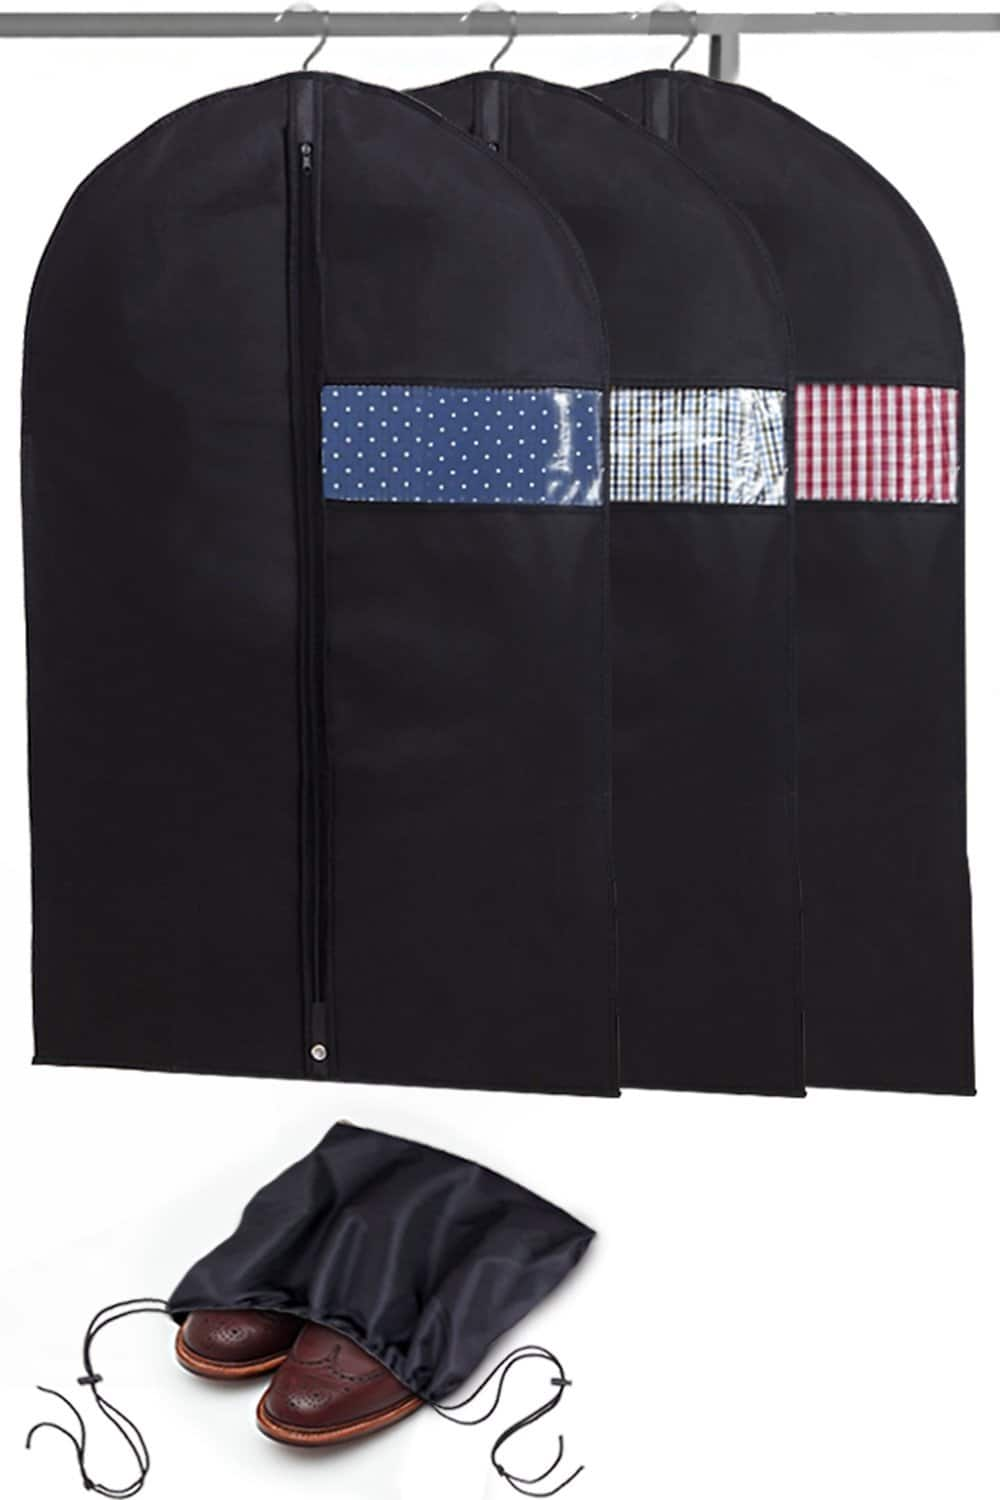 3-Count Garment Bags w/ Shoe Bag  $10, Tumbler Kit (for yeti, rtic & others) $6